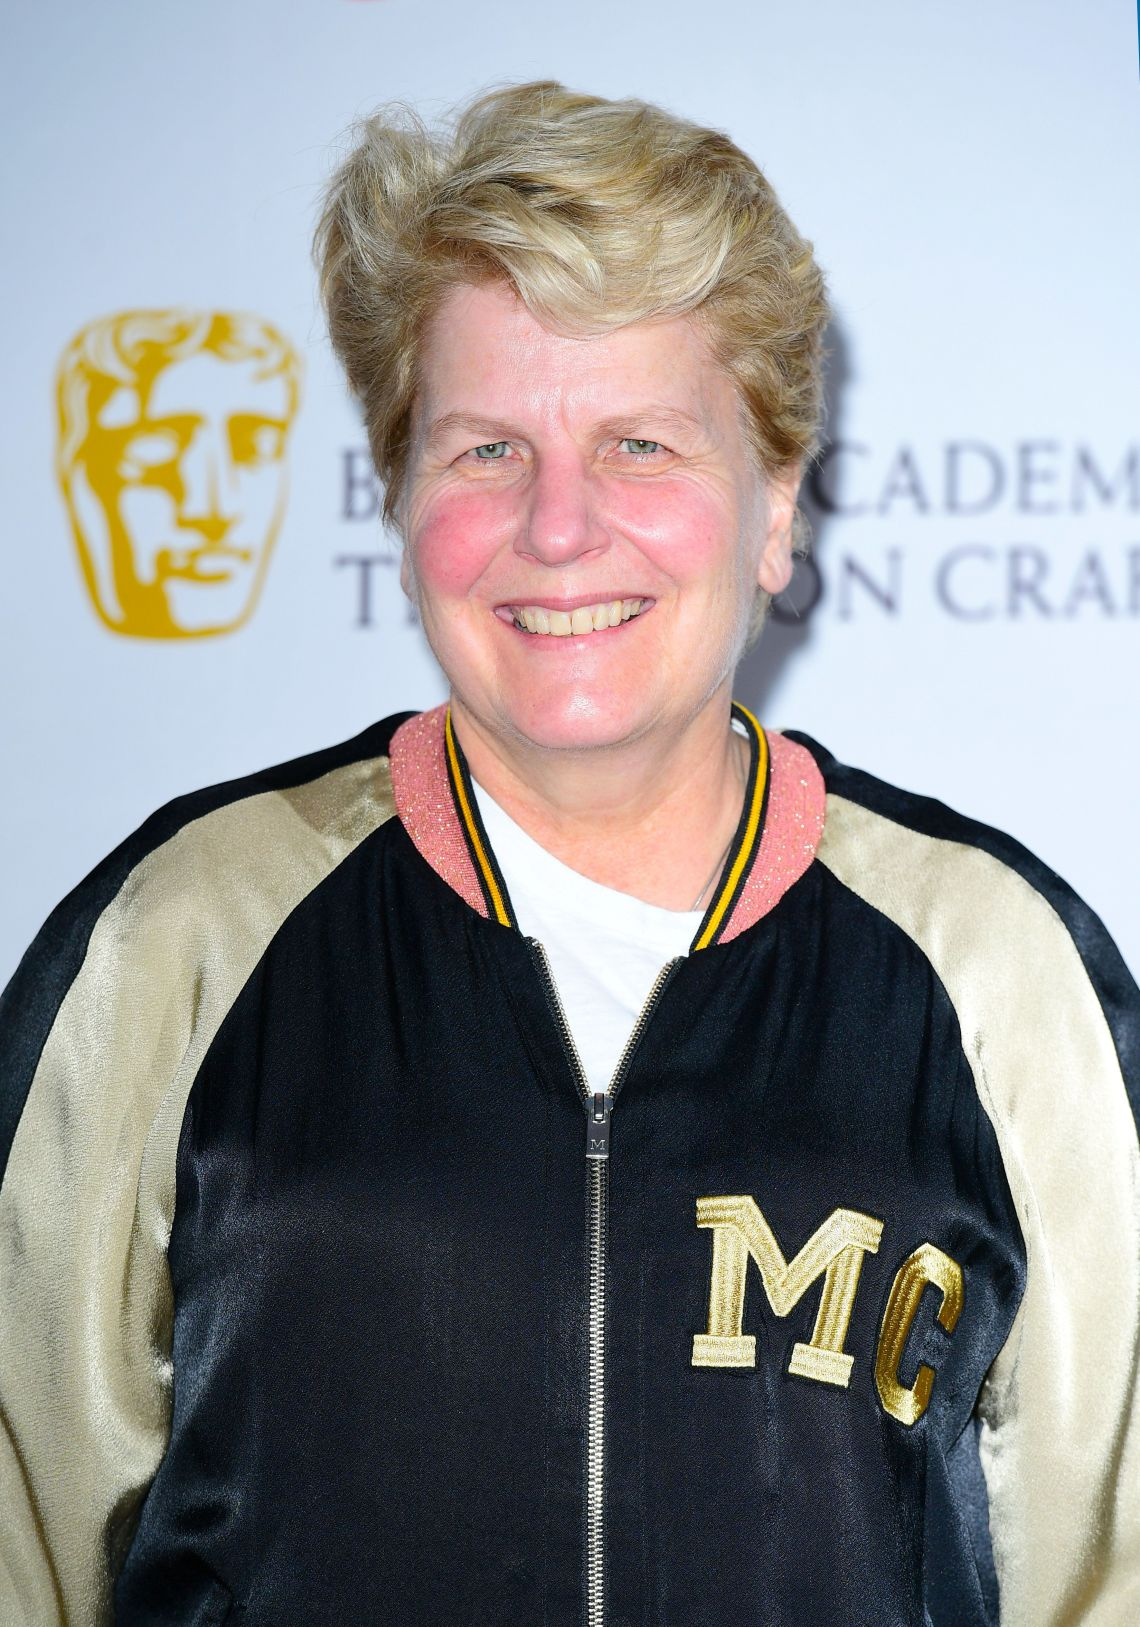 Sandi Toksvig picked up the Lifetime Achievement Award at the British LGBT Awards